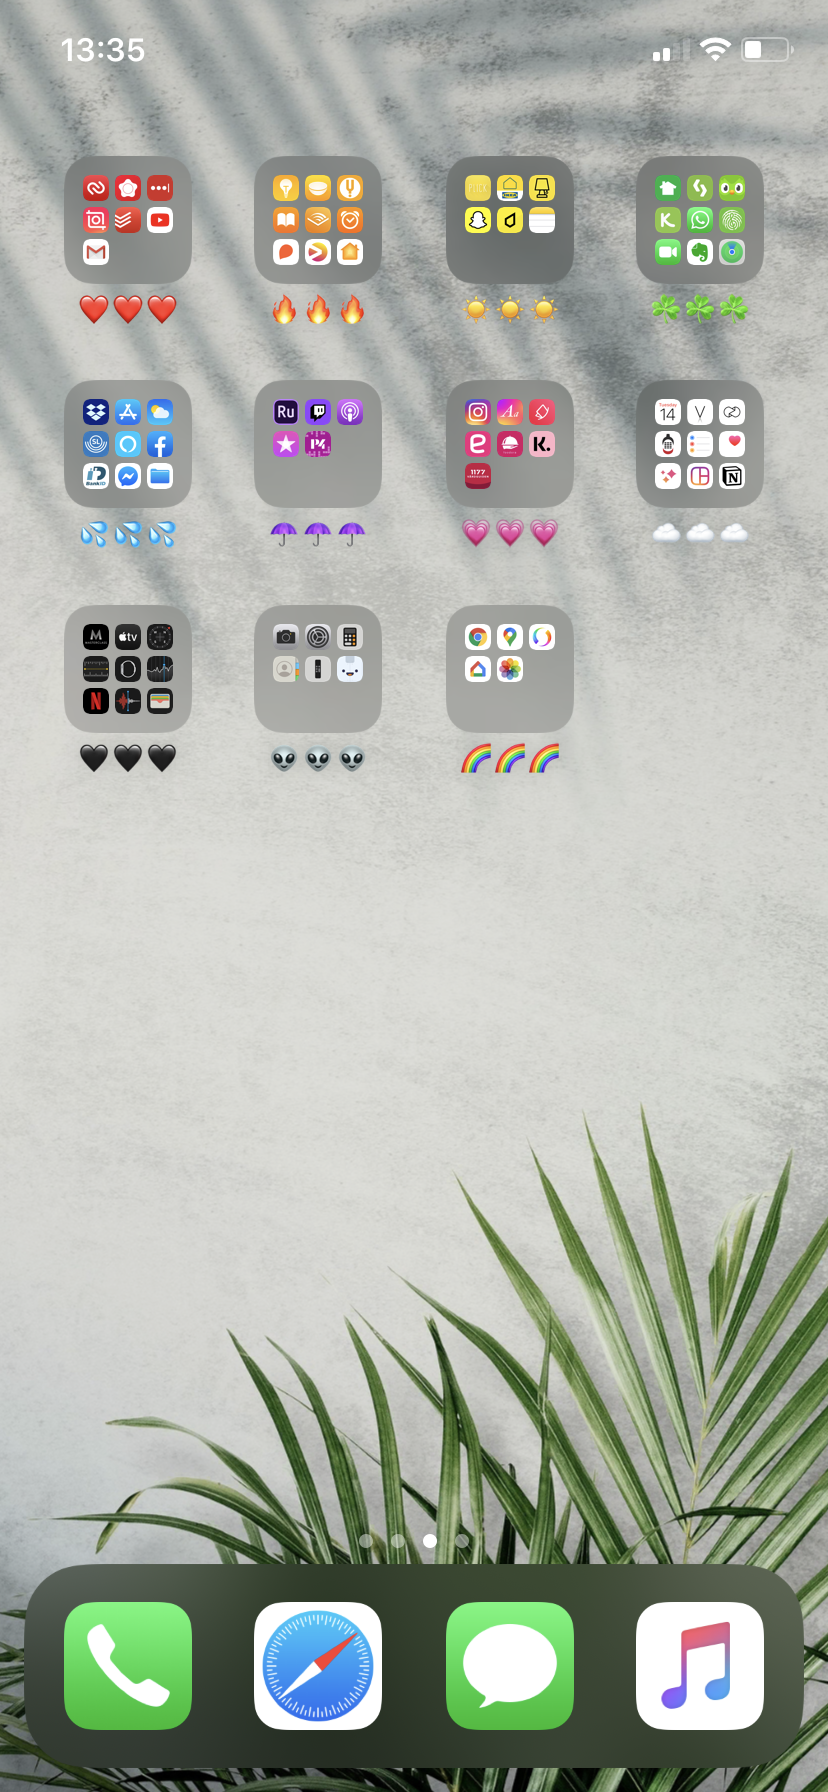 How to Organize iPhone Apps Aesthetically